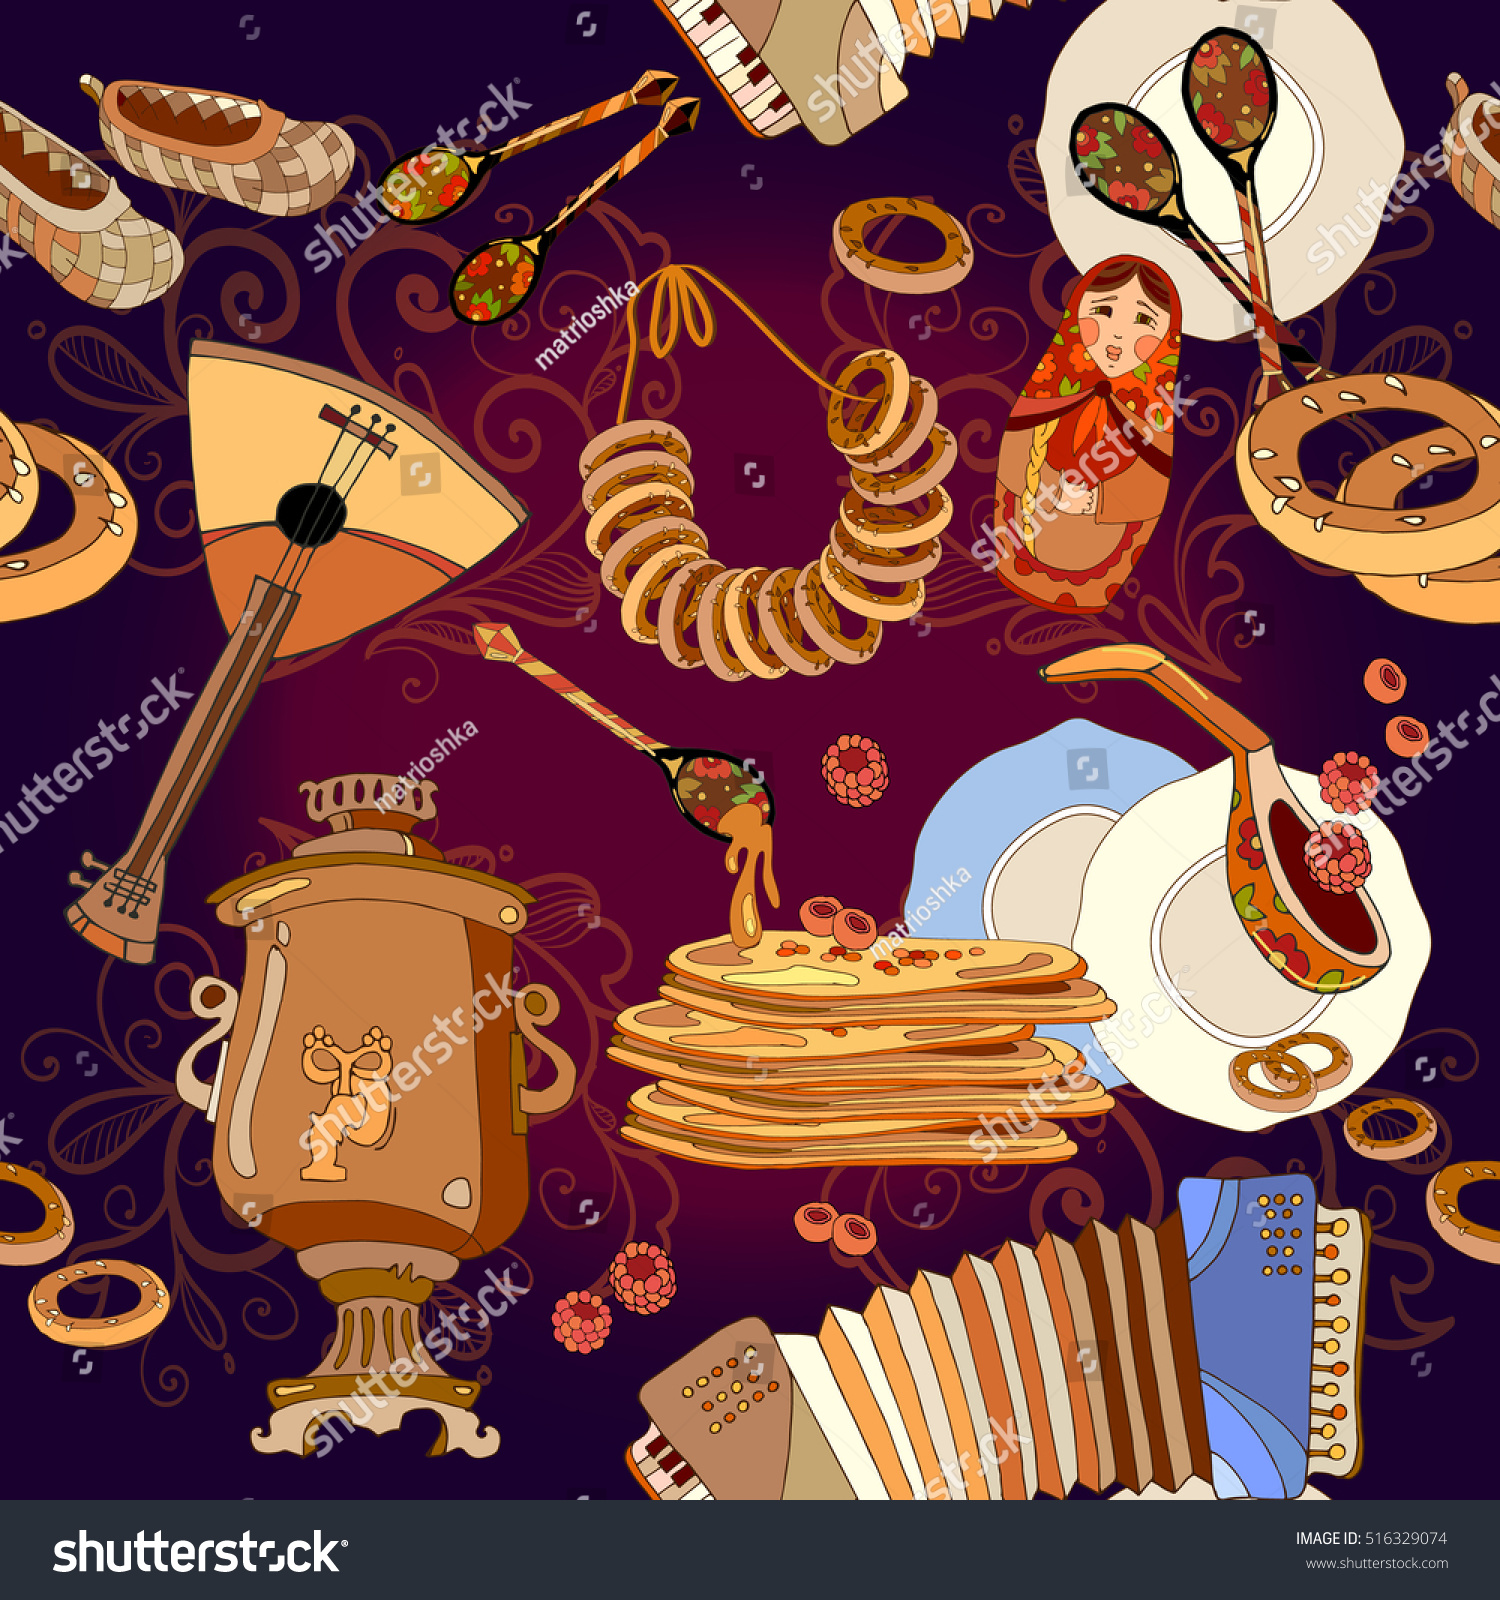 russian cuisine seamless pattern pancakes samovar stock vector  russian cuisine seamless pattern pancakes samovar balalaika russian culture and traditions